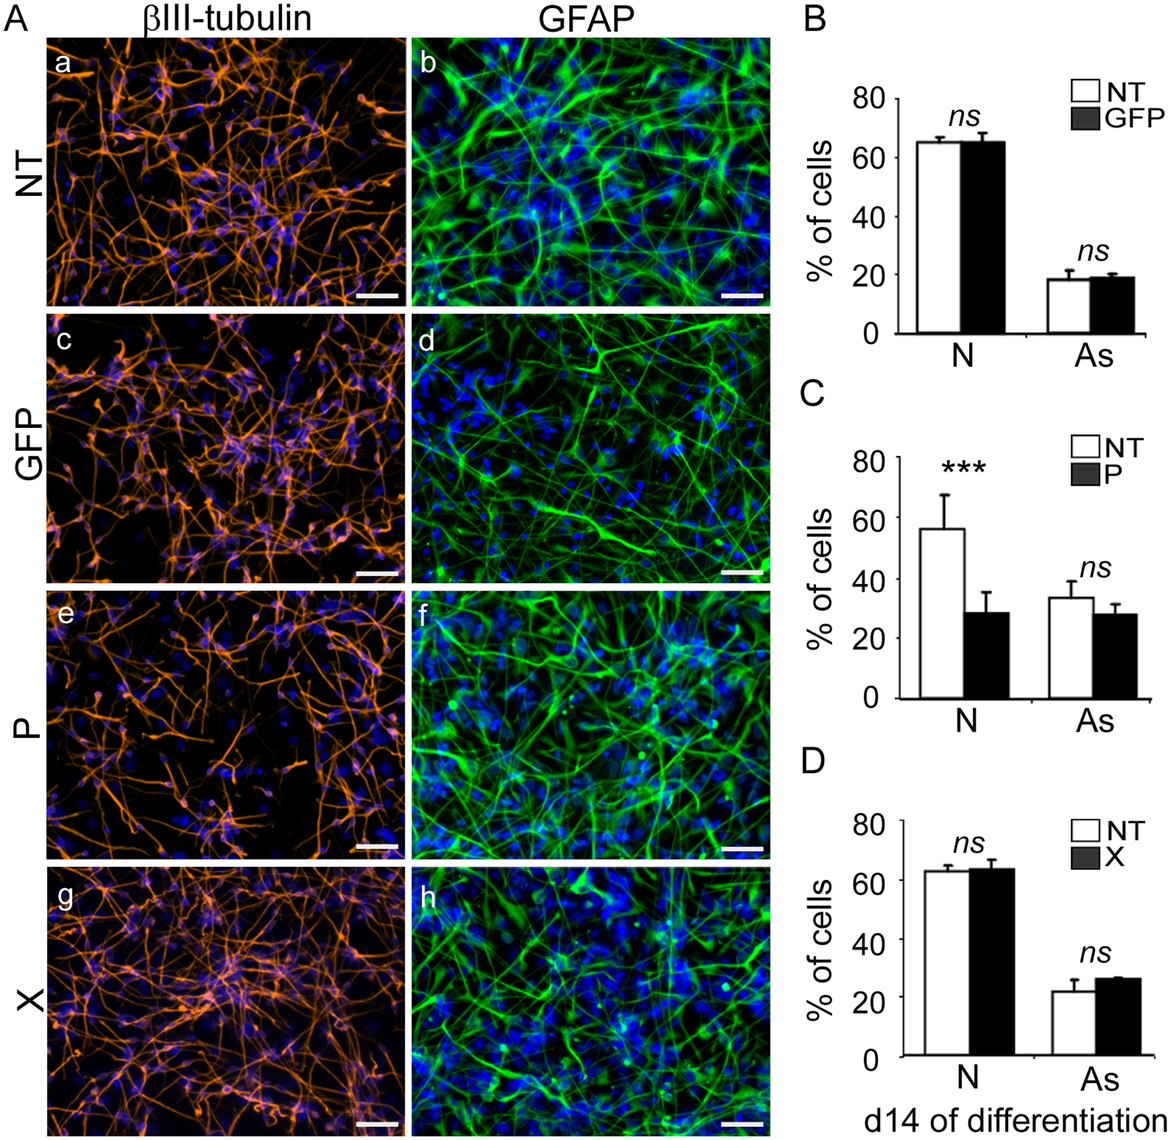 Expression of the <i>bdv-p</i> but not <i>bdv-x</i> gene in hNPCs impairs neuronal differentiation.